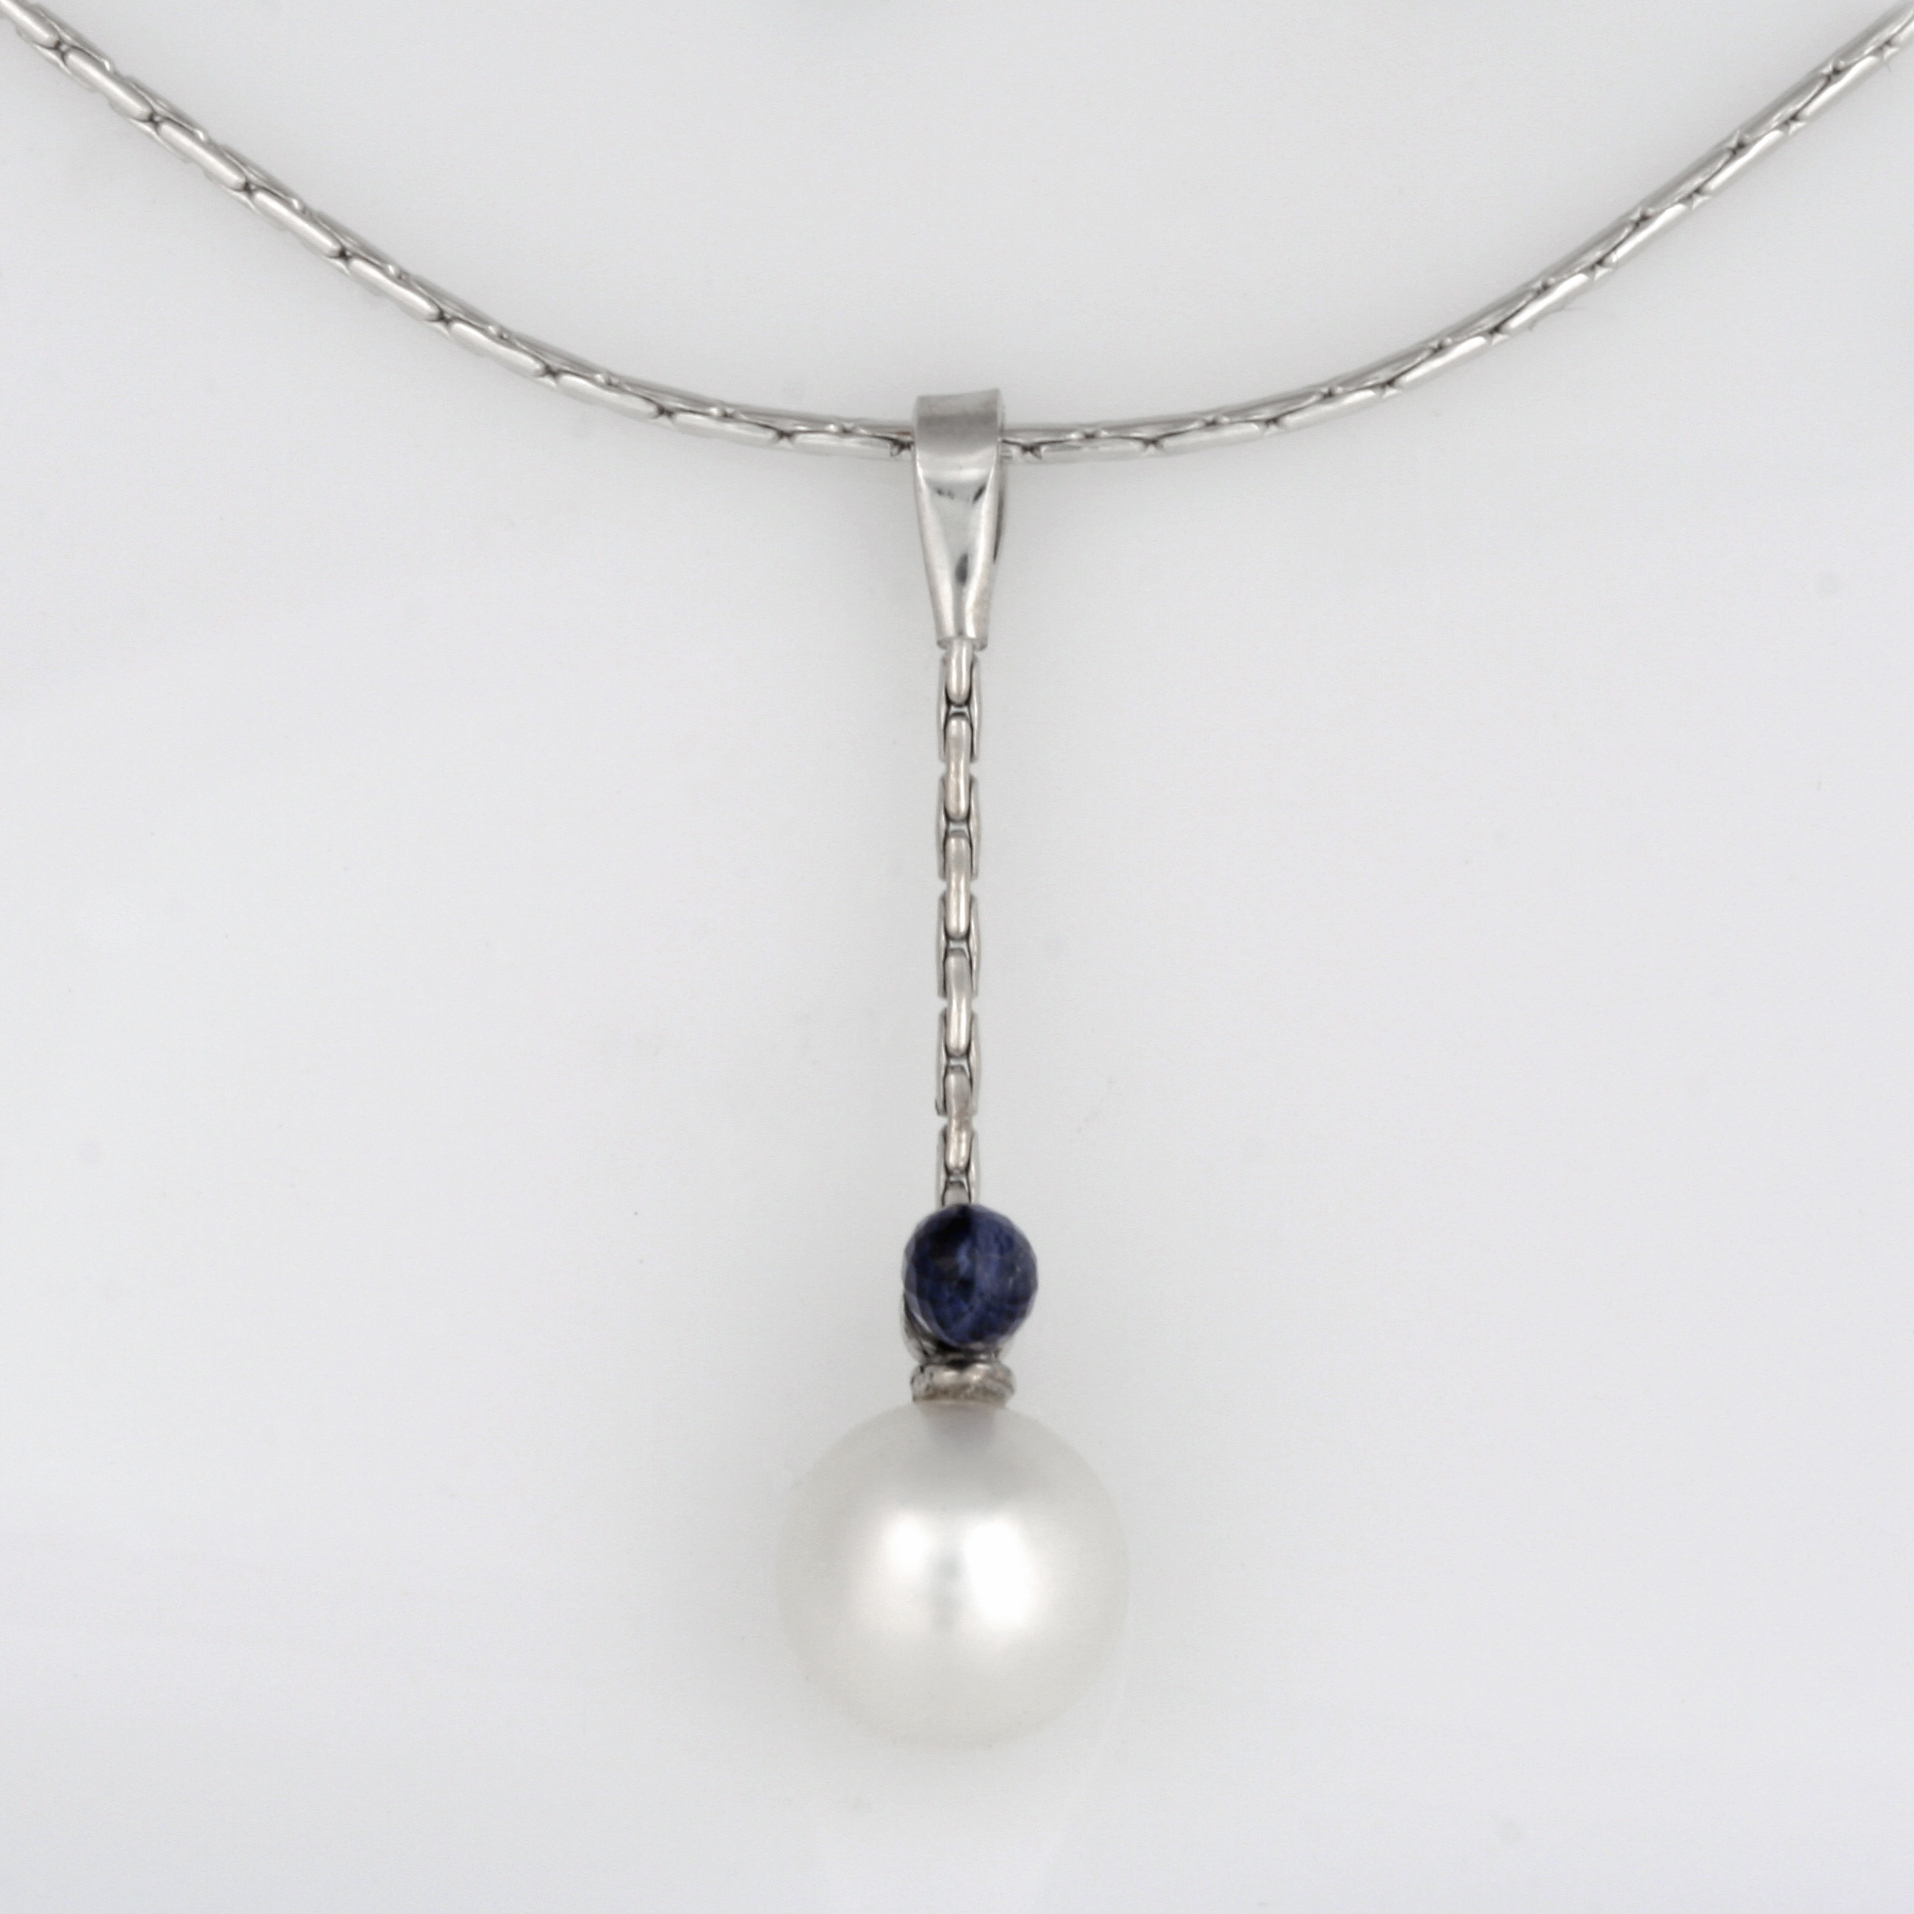 Handmade palladium and white gold south sea pearl and ceylon sapphire briolette pendant featured on a 14ct white gold chain